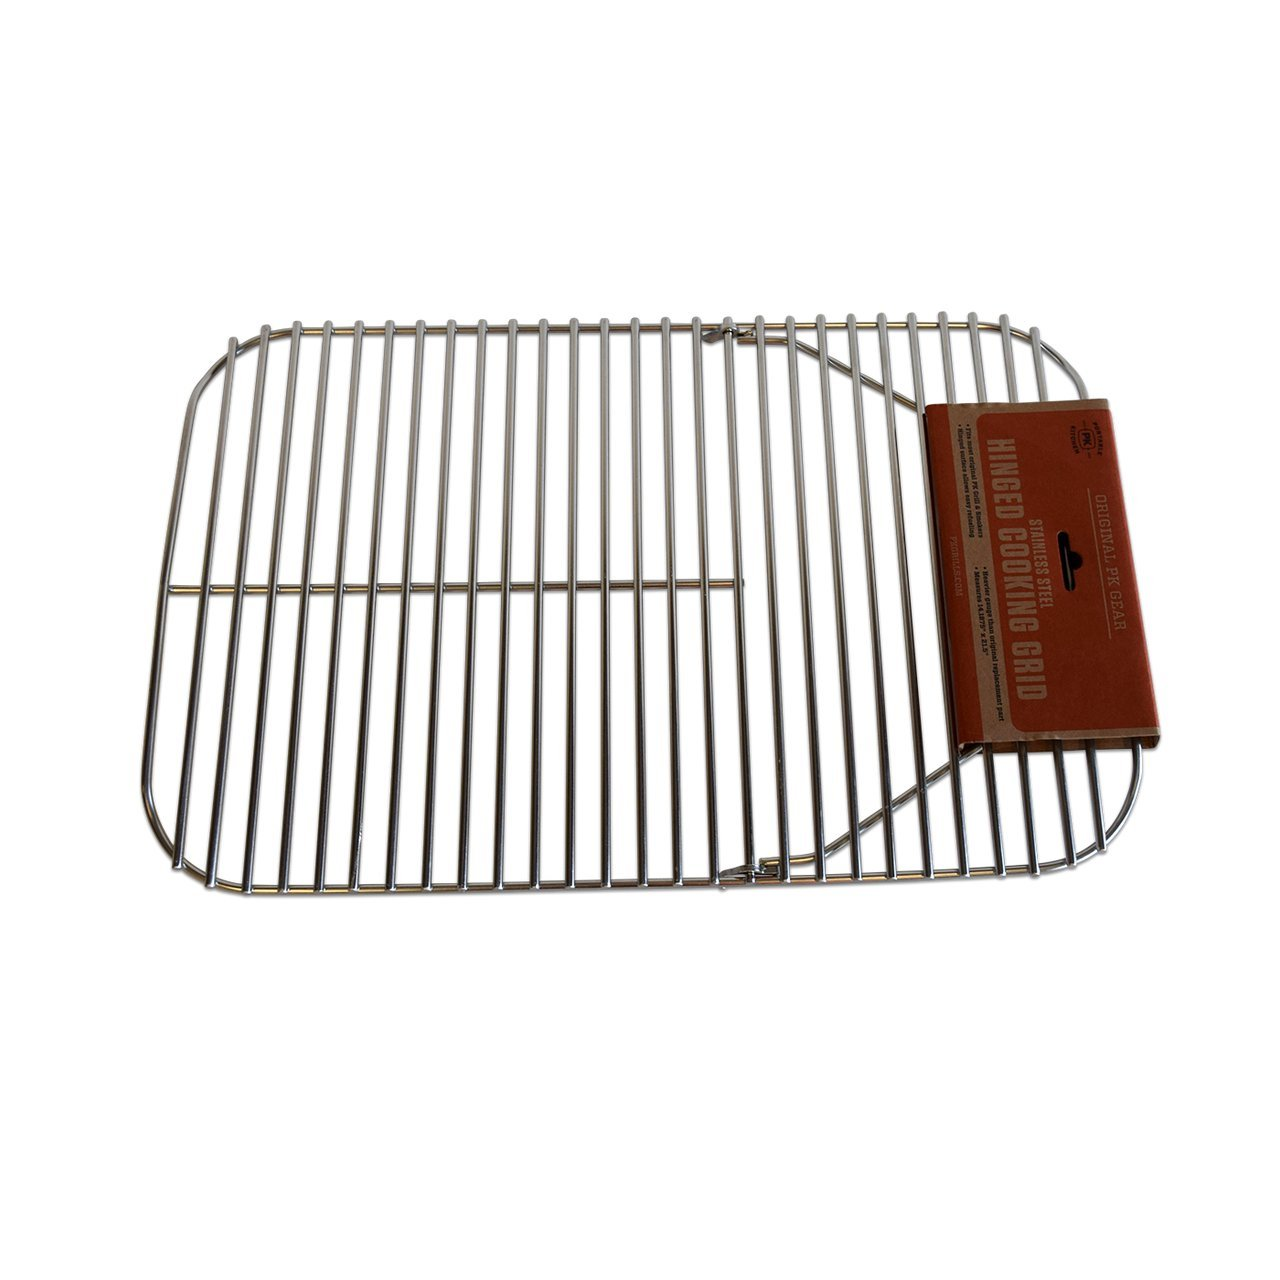 PK Grills PK99011 Stainless Steel Hinged Cooking Grid, Fits All PK Grills Manufacturered Since 1997